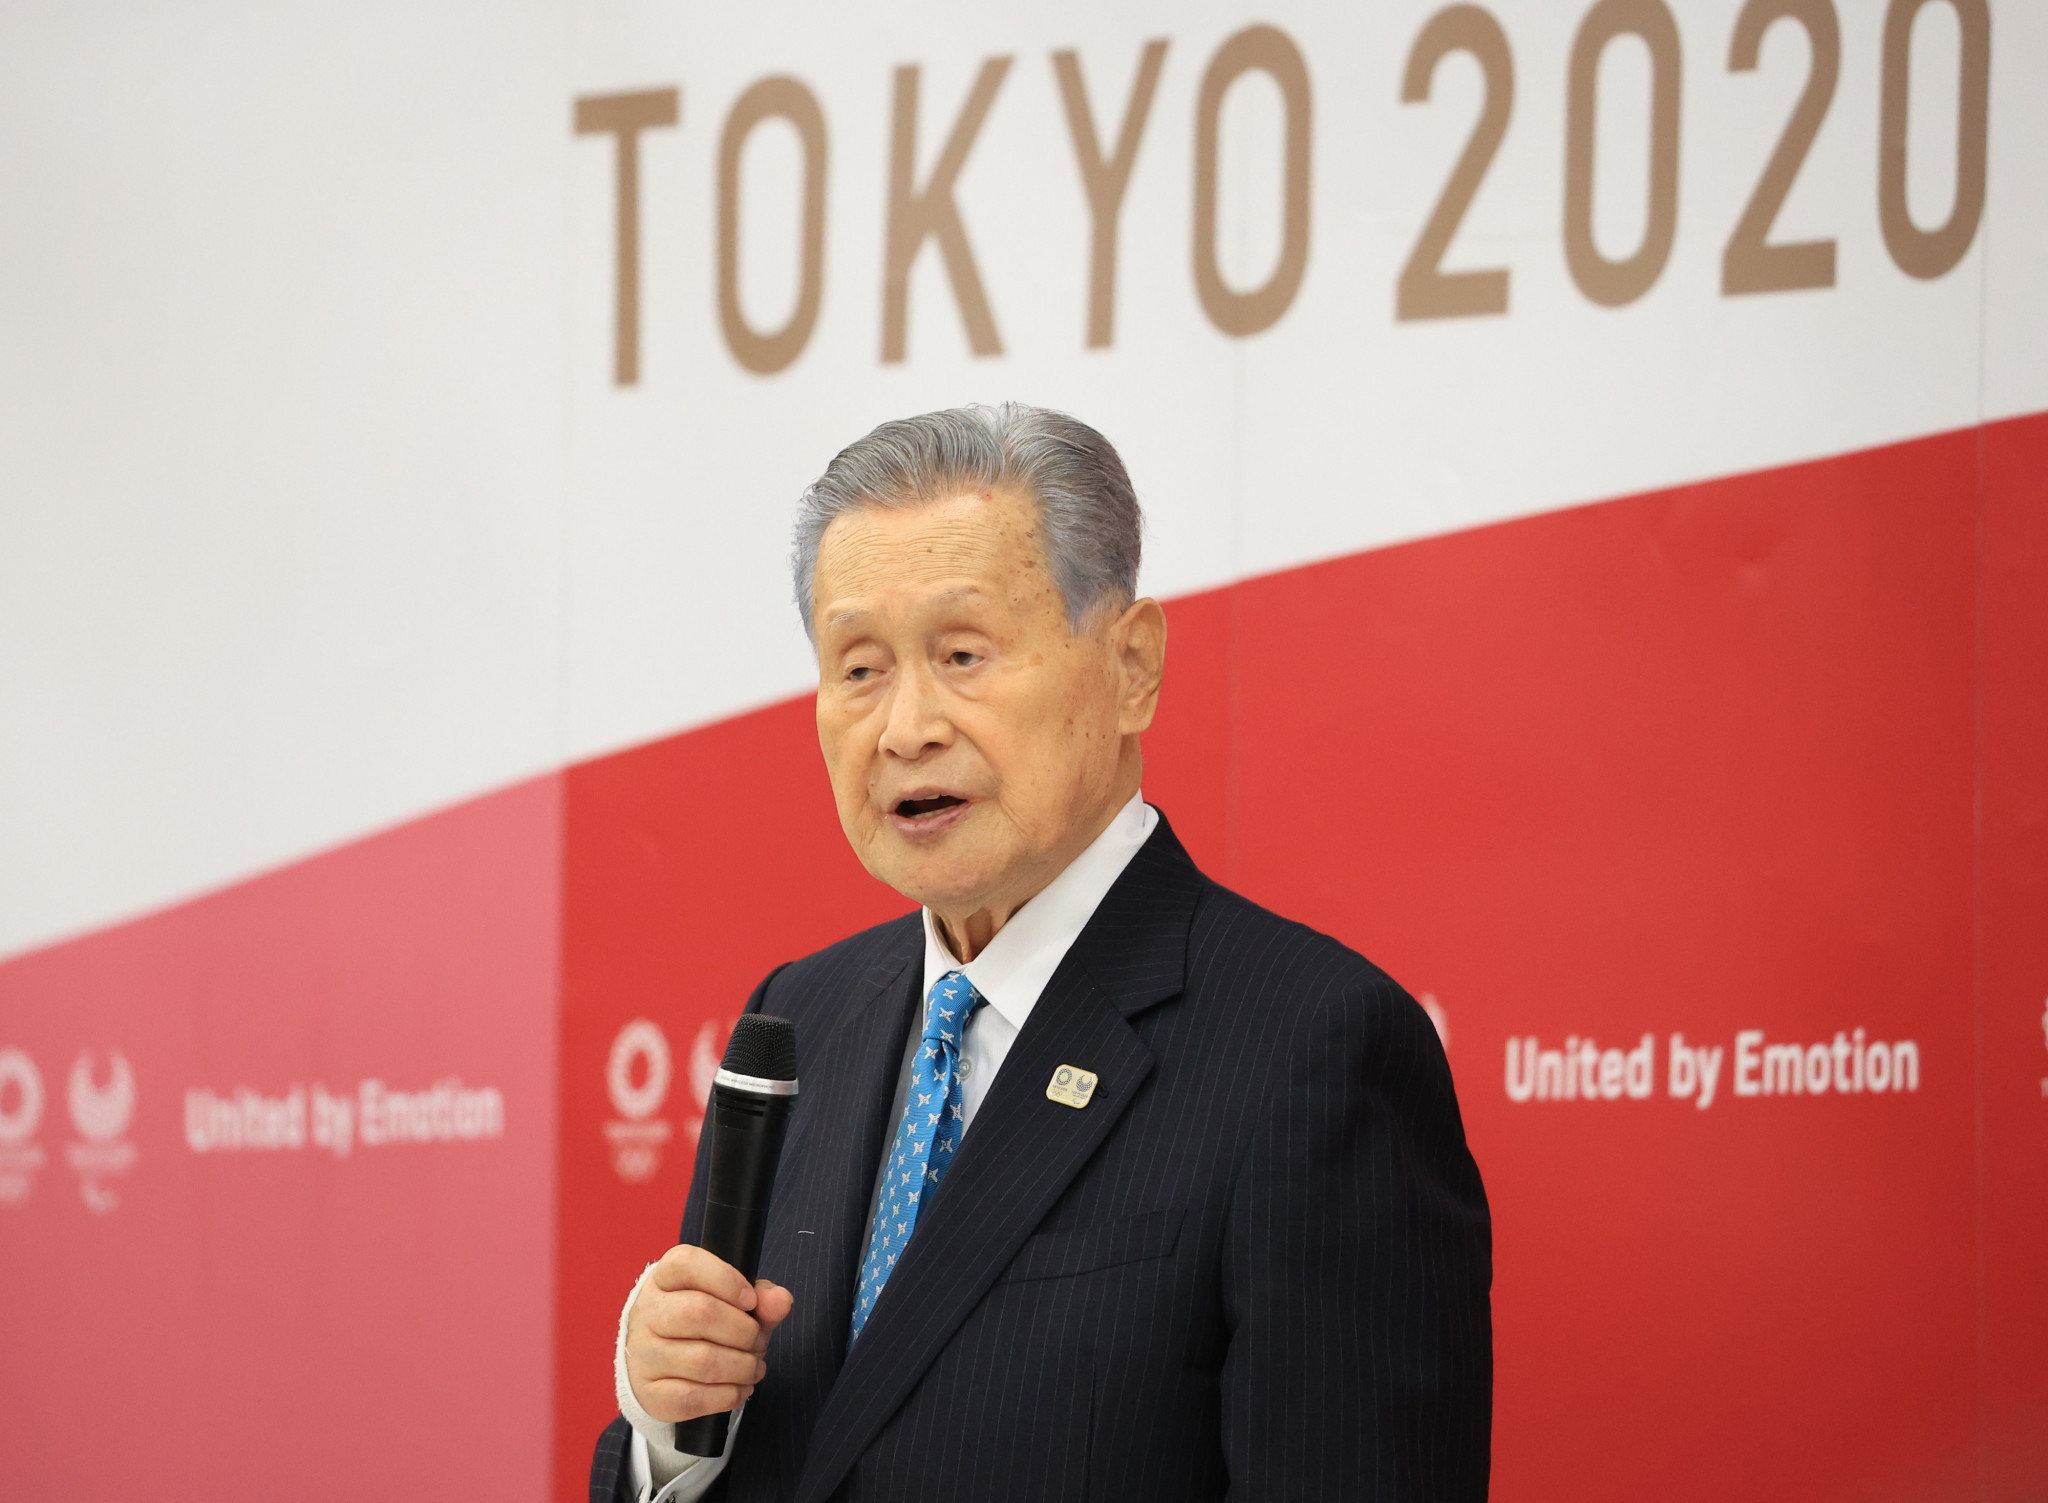 Former Tokyo 2020 President Yoshirō Mori sparked a sexism row which resulted in the resignation of hundreds of volunteers ©Getty Images